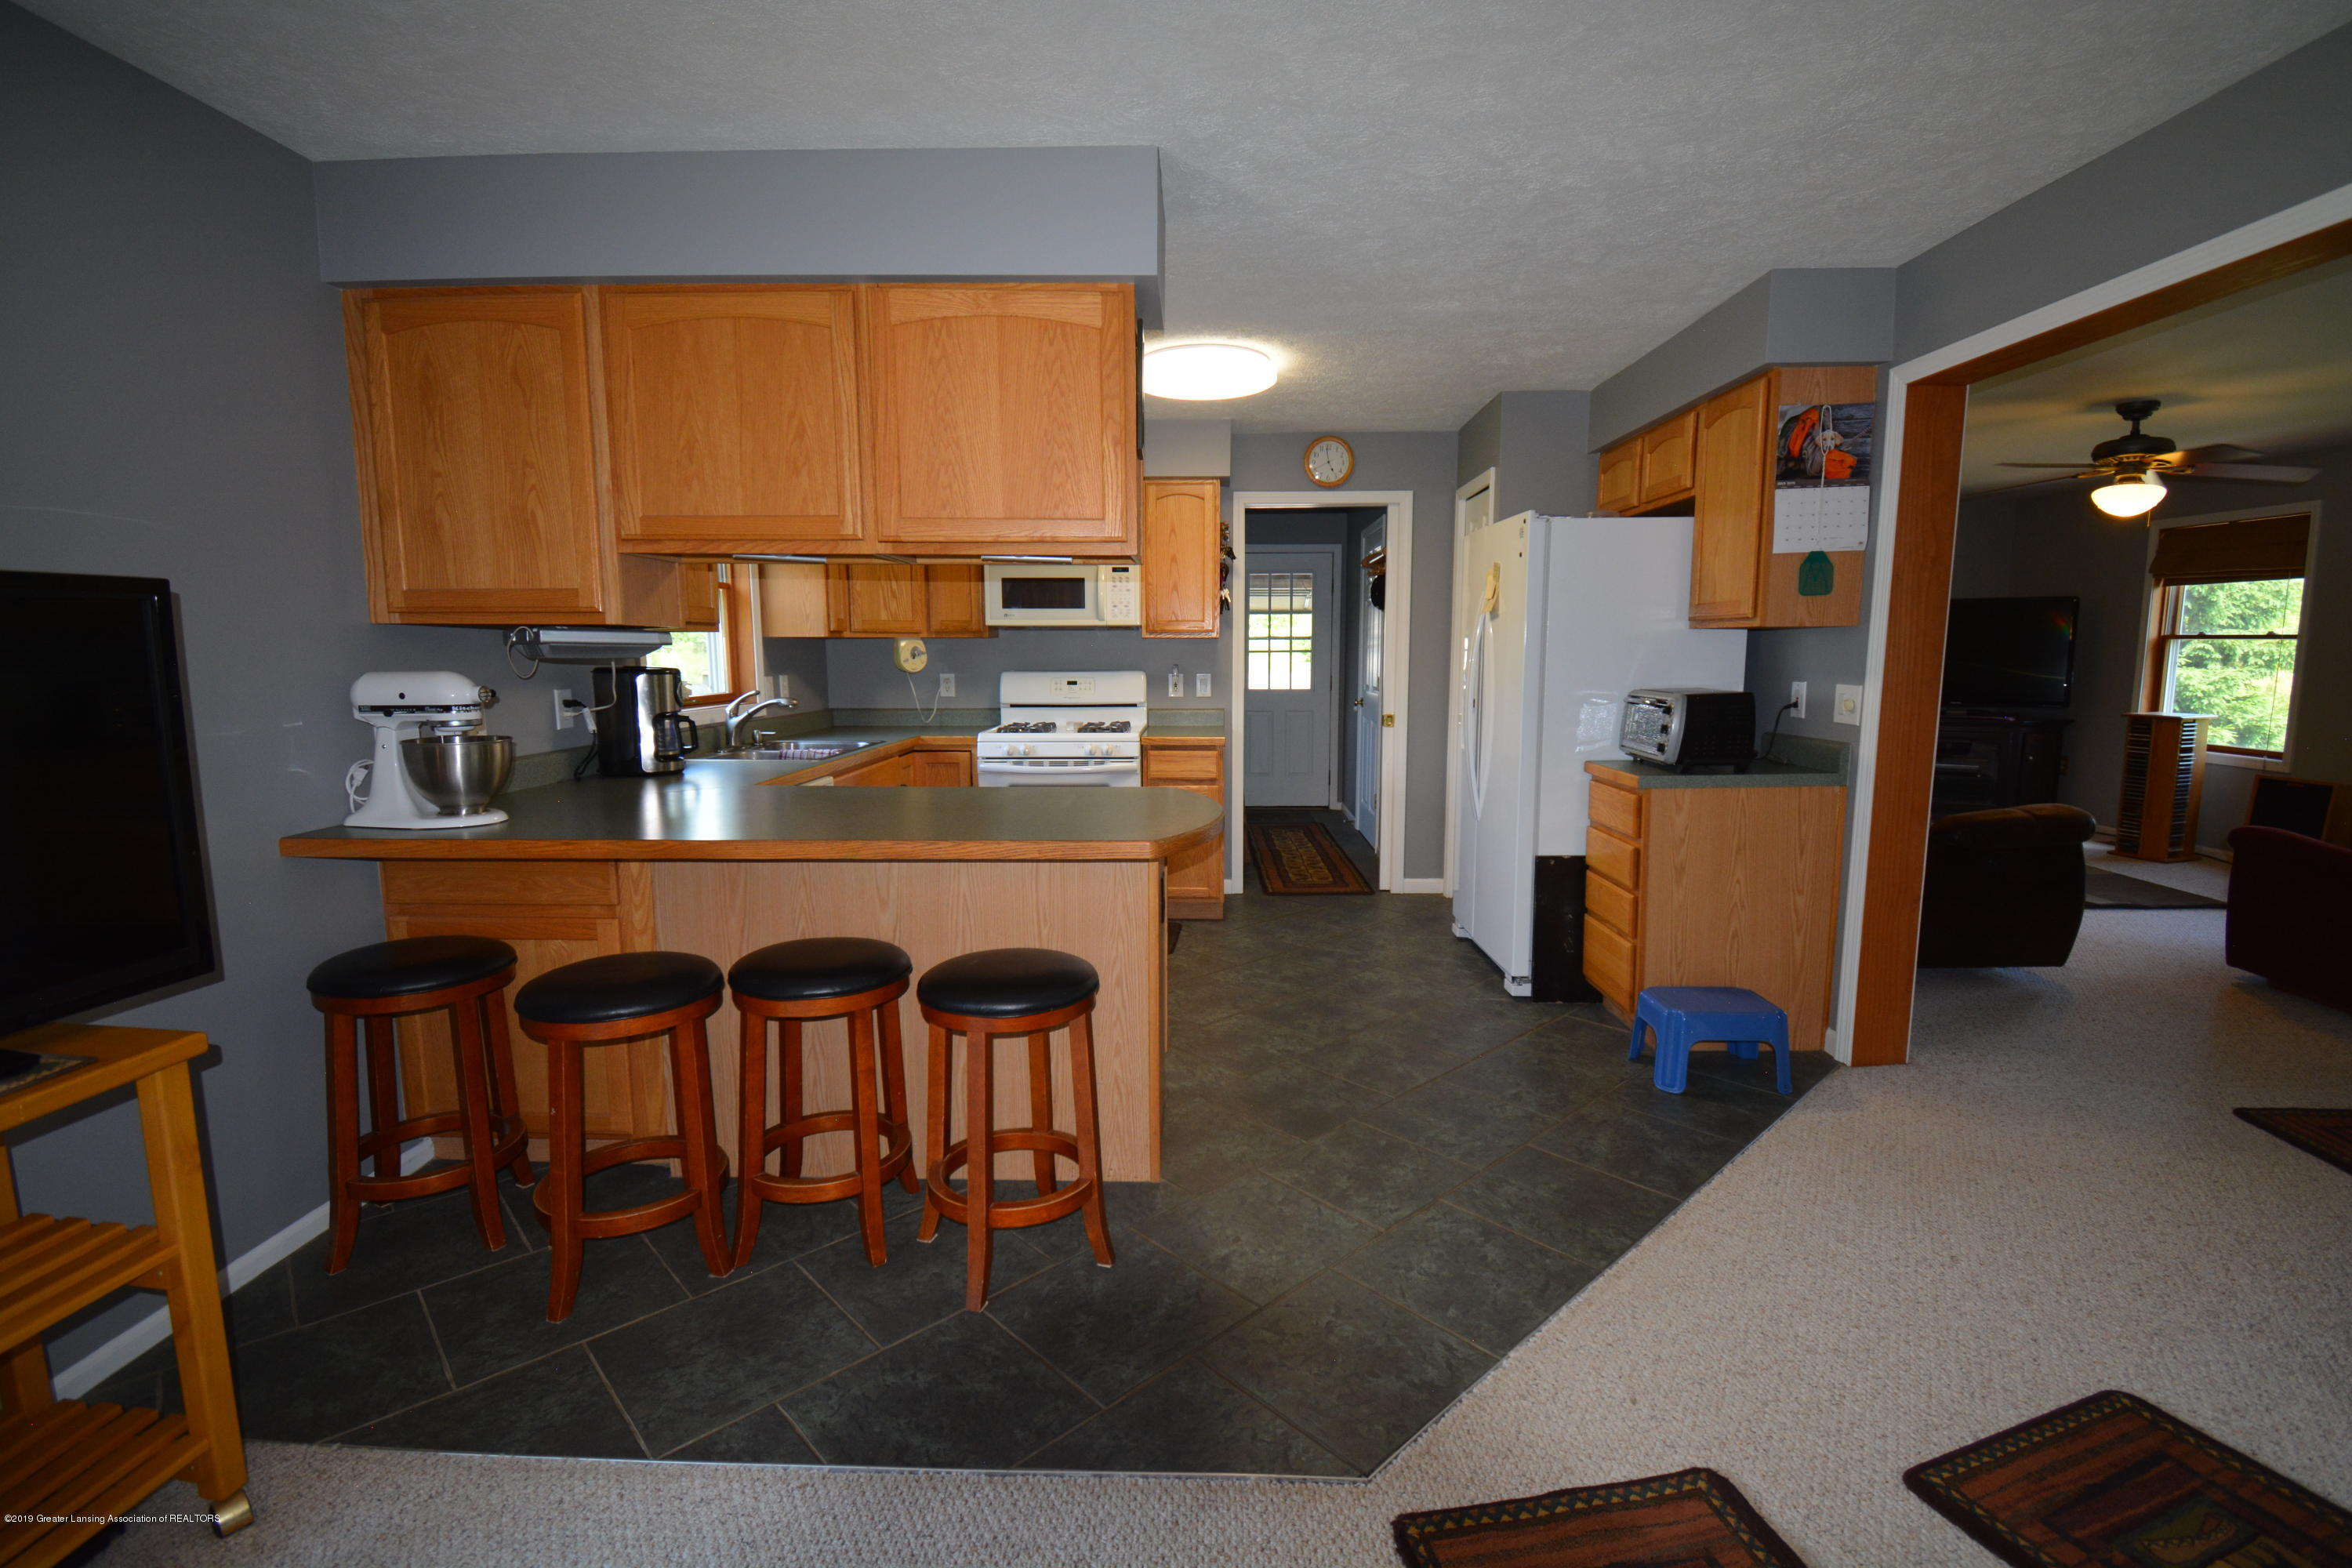 7459 Rossman Hwy - Kitchen View 1 - 12